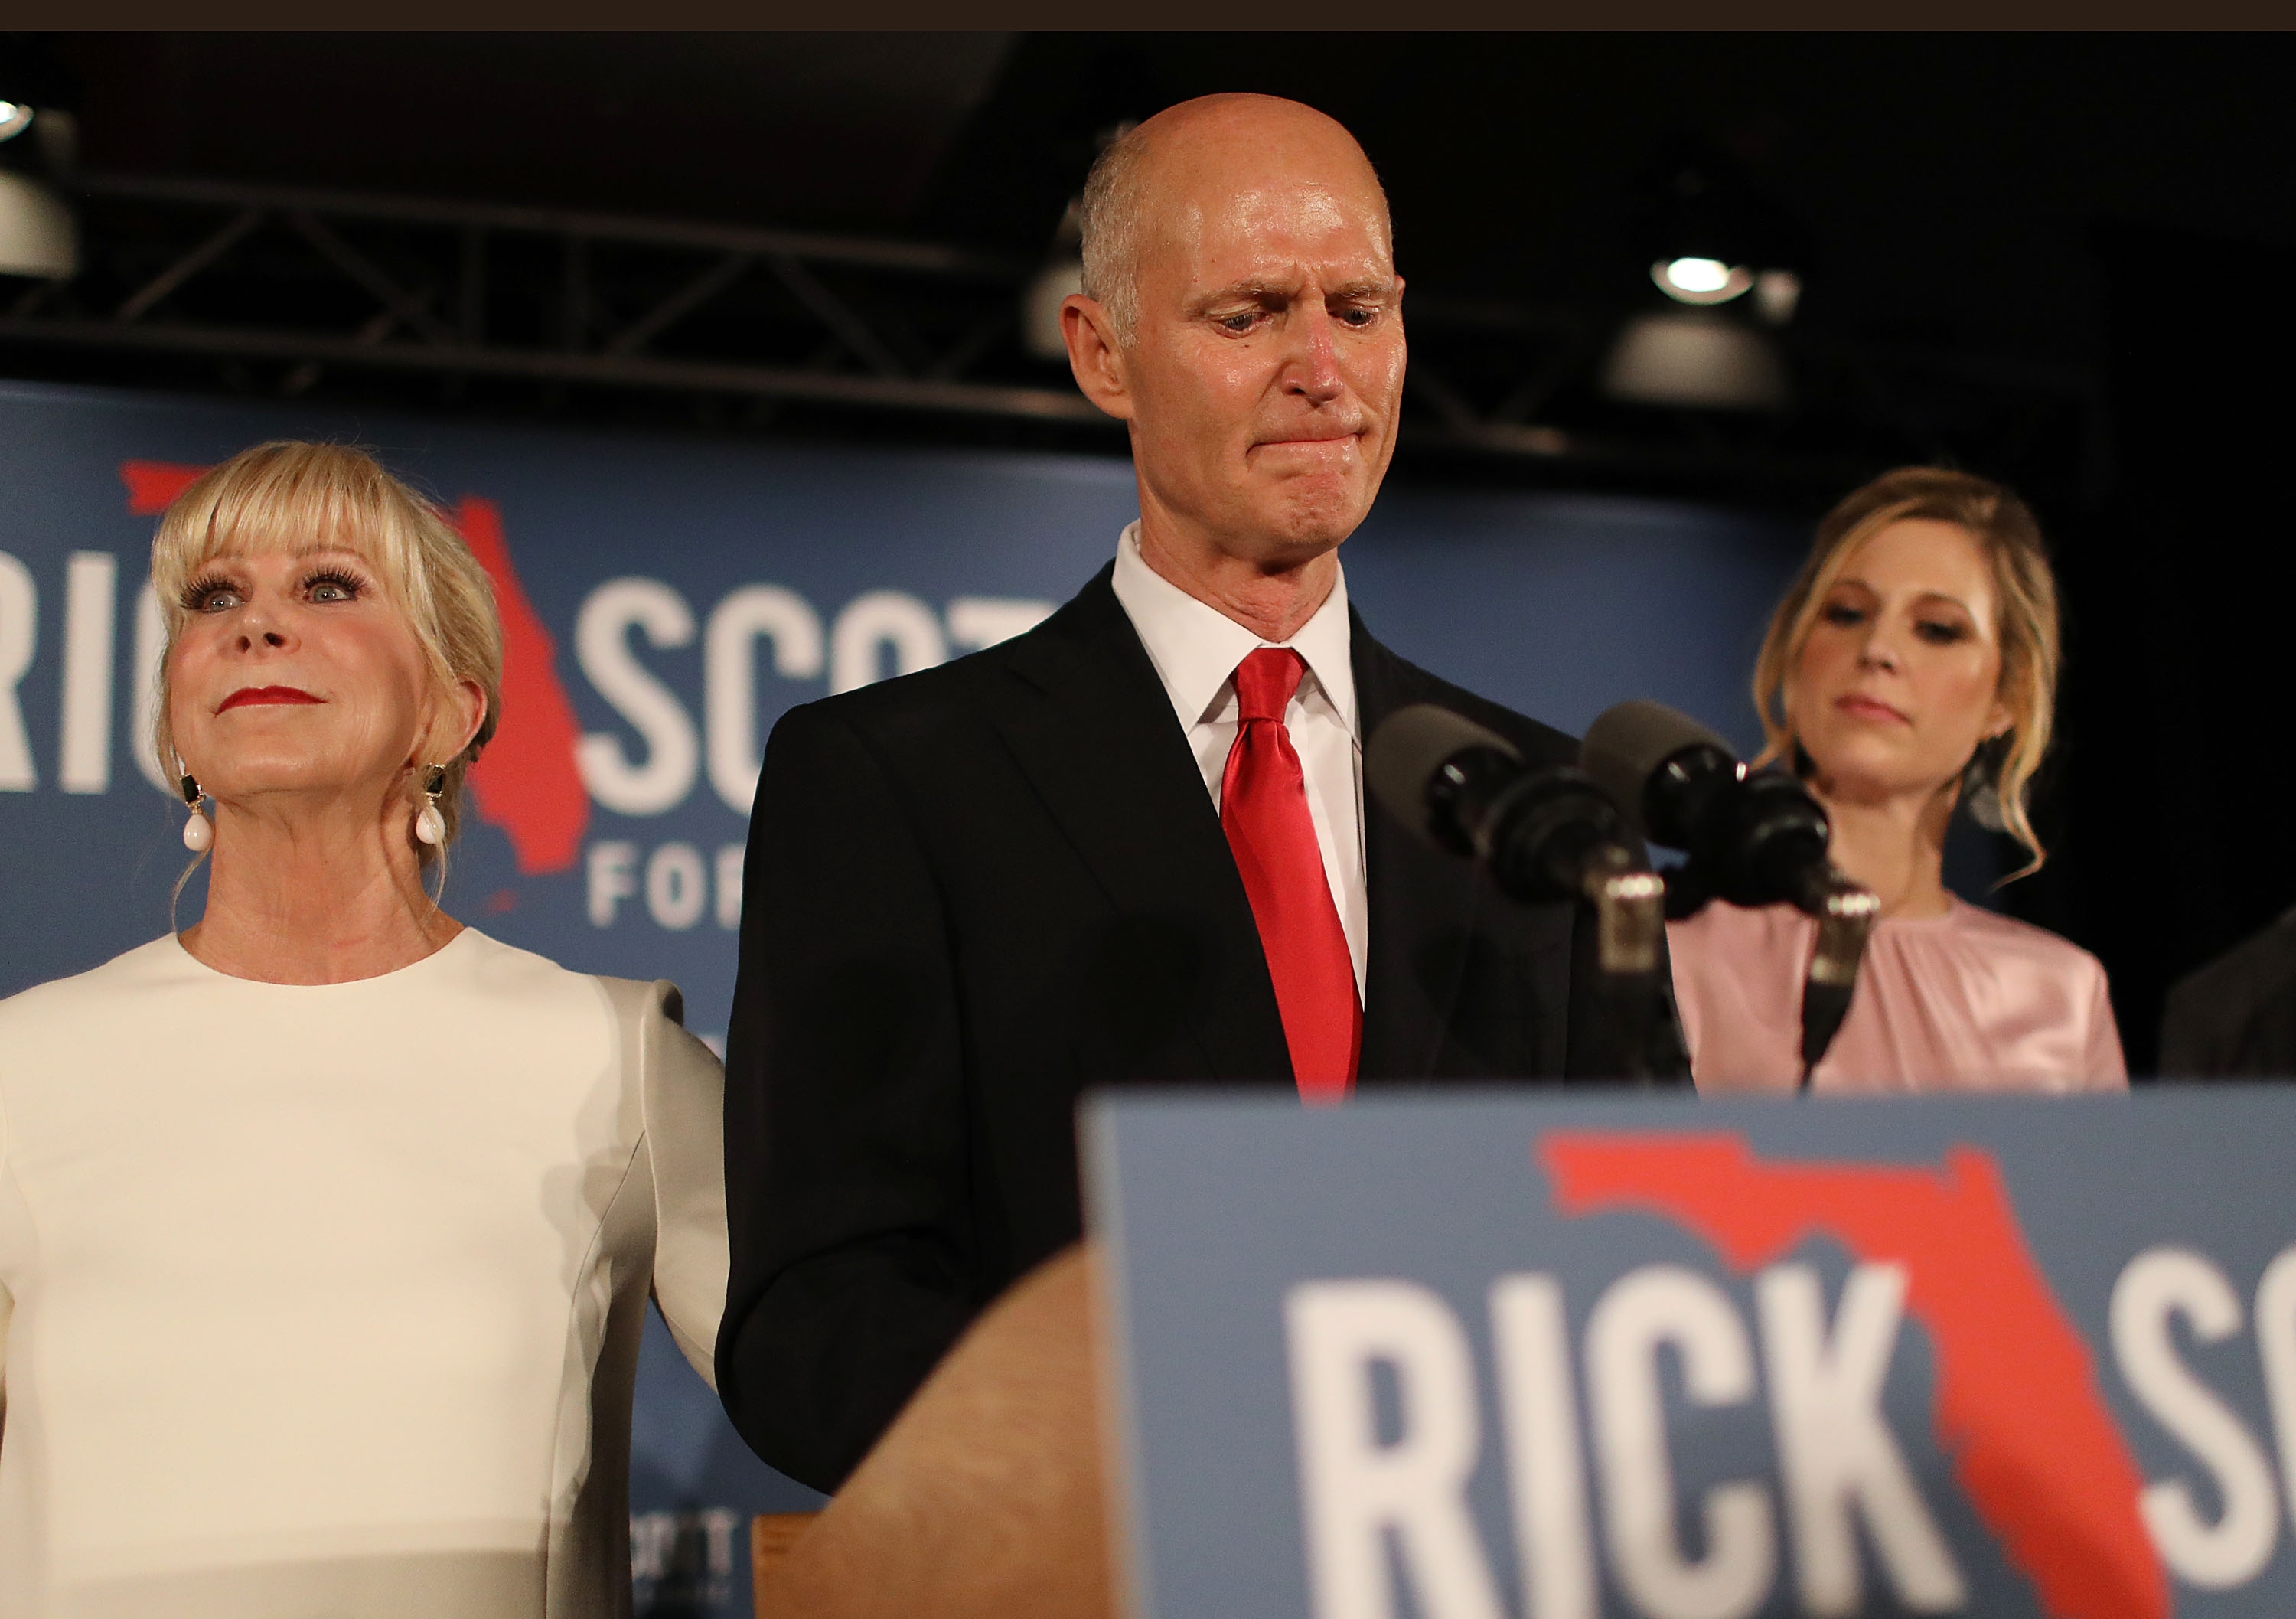 Florida Senate Candidate Rick Scott Attends Election Night Event In Naples